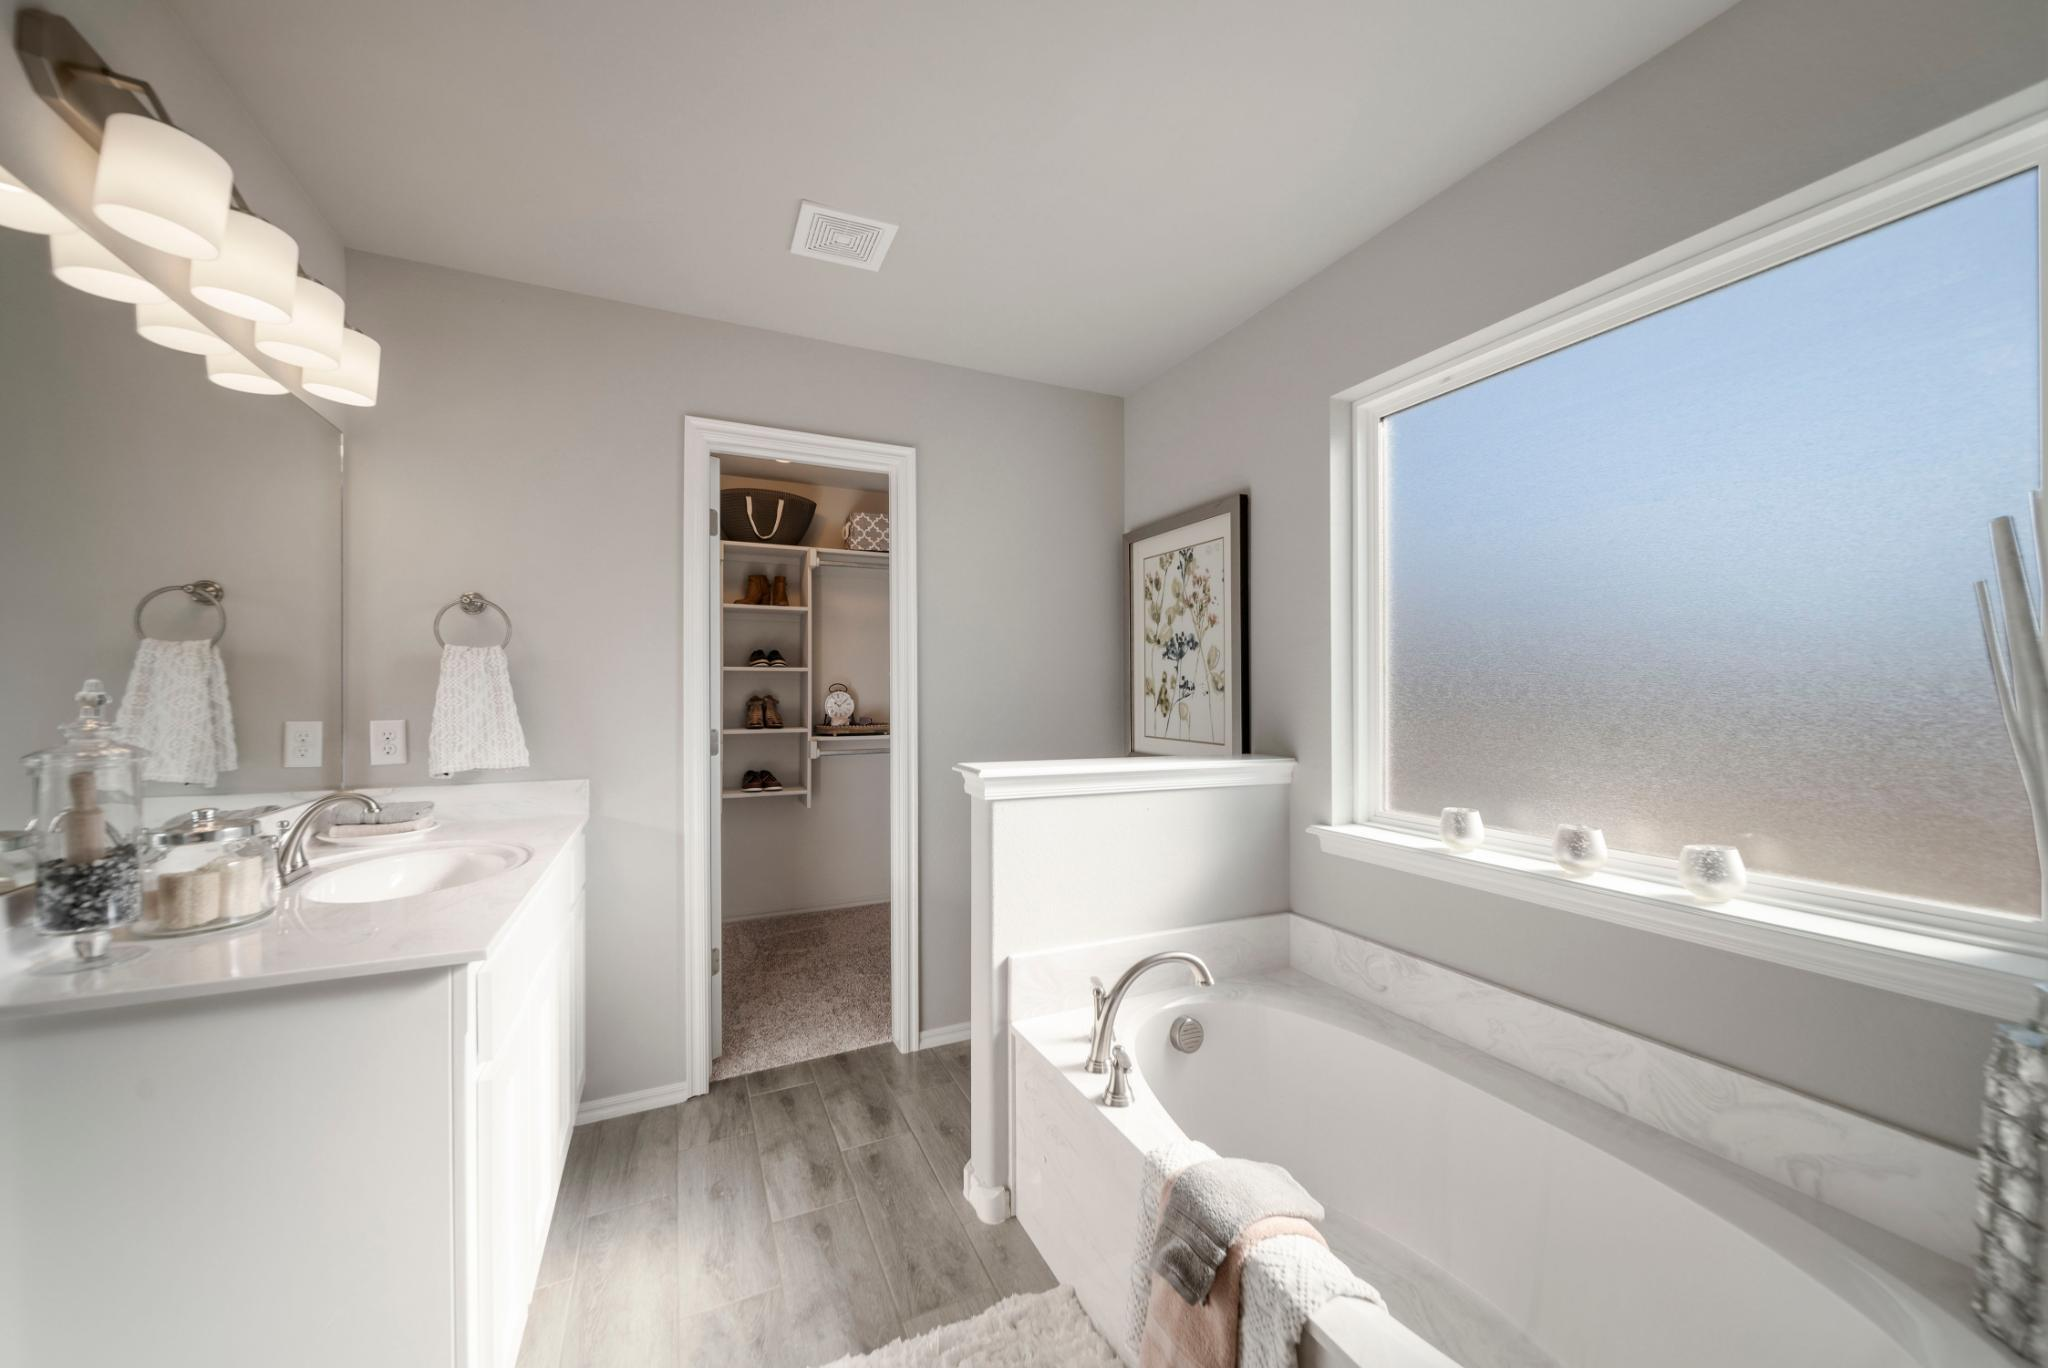 Bathroom featured in the Tahoe By Capital Homes in Tulsa, OK